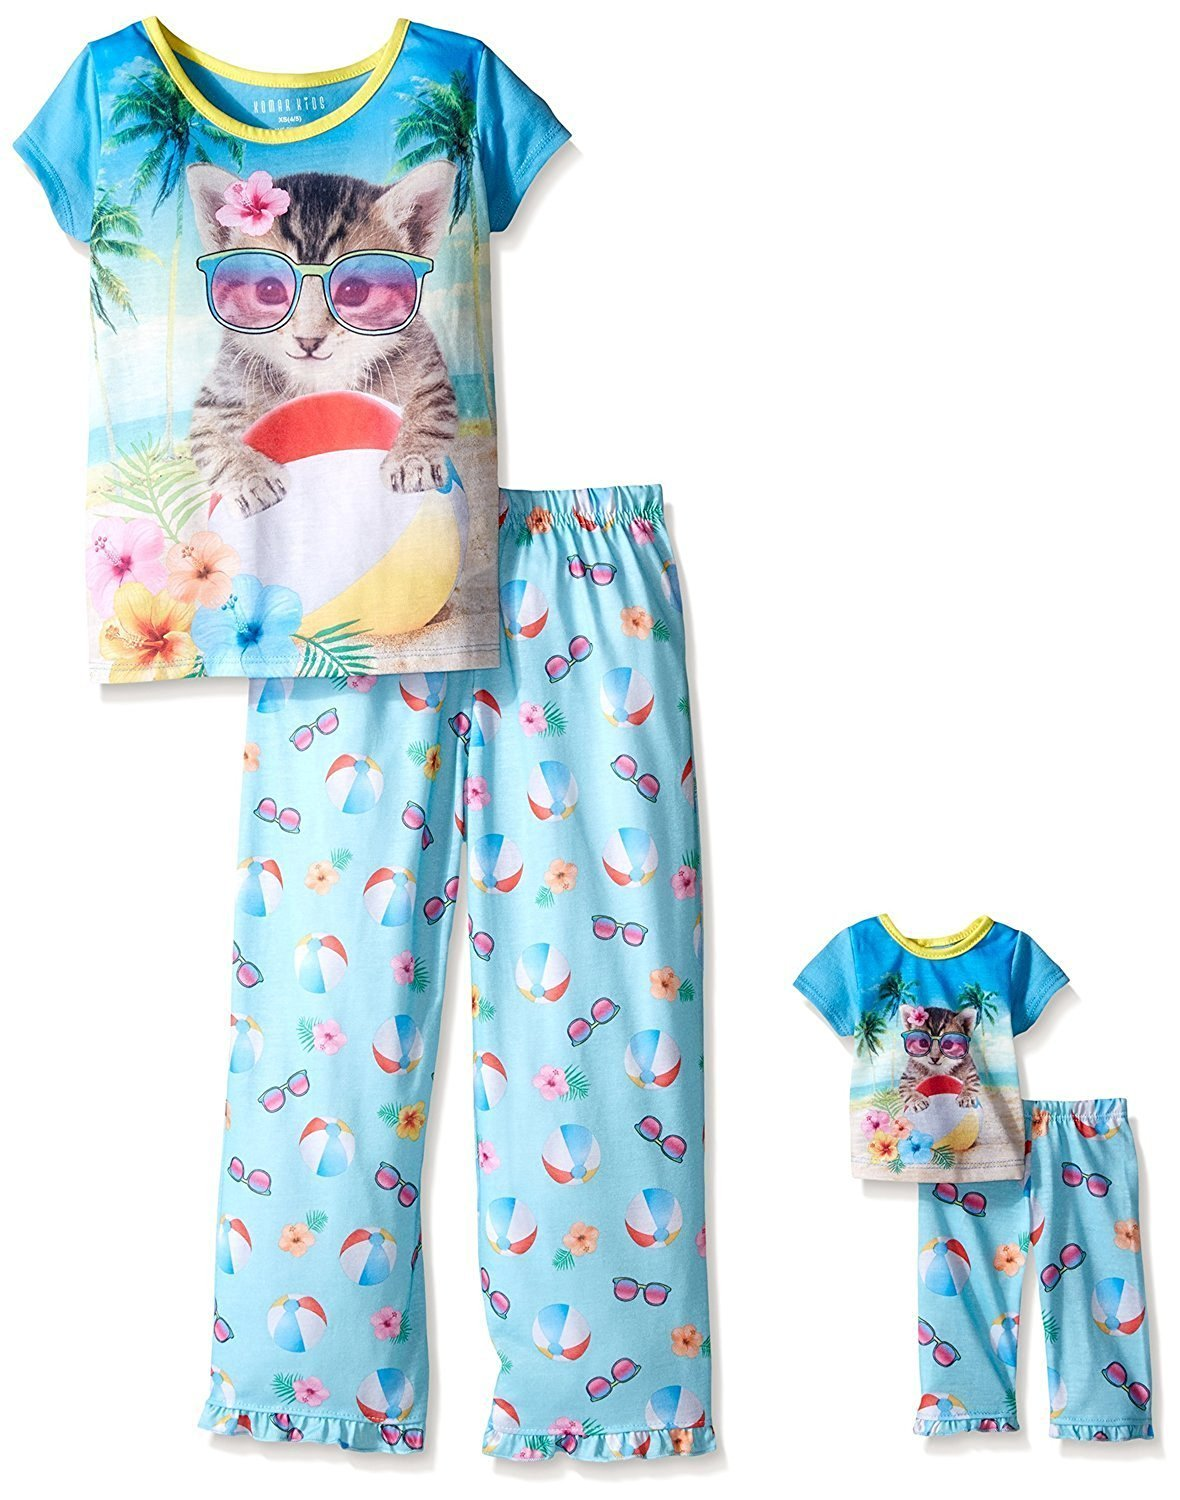 Komar Kids Girls' Pajamas Nightgowns Matching 18 inch Doll Sleepwear, Sizes 4-16 Blue X-Small